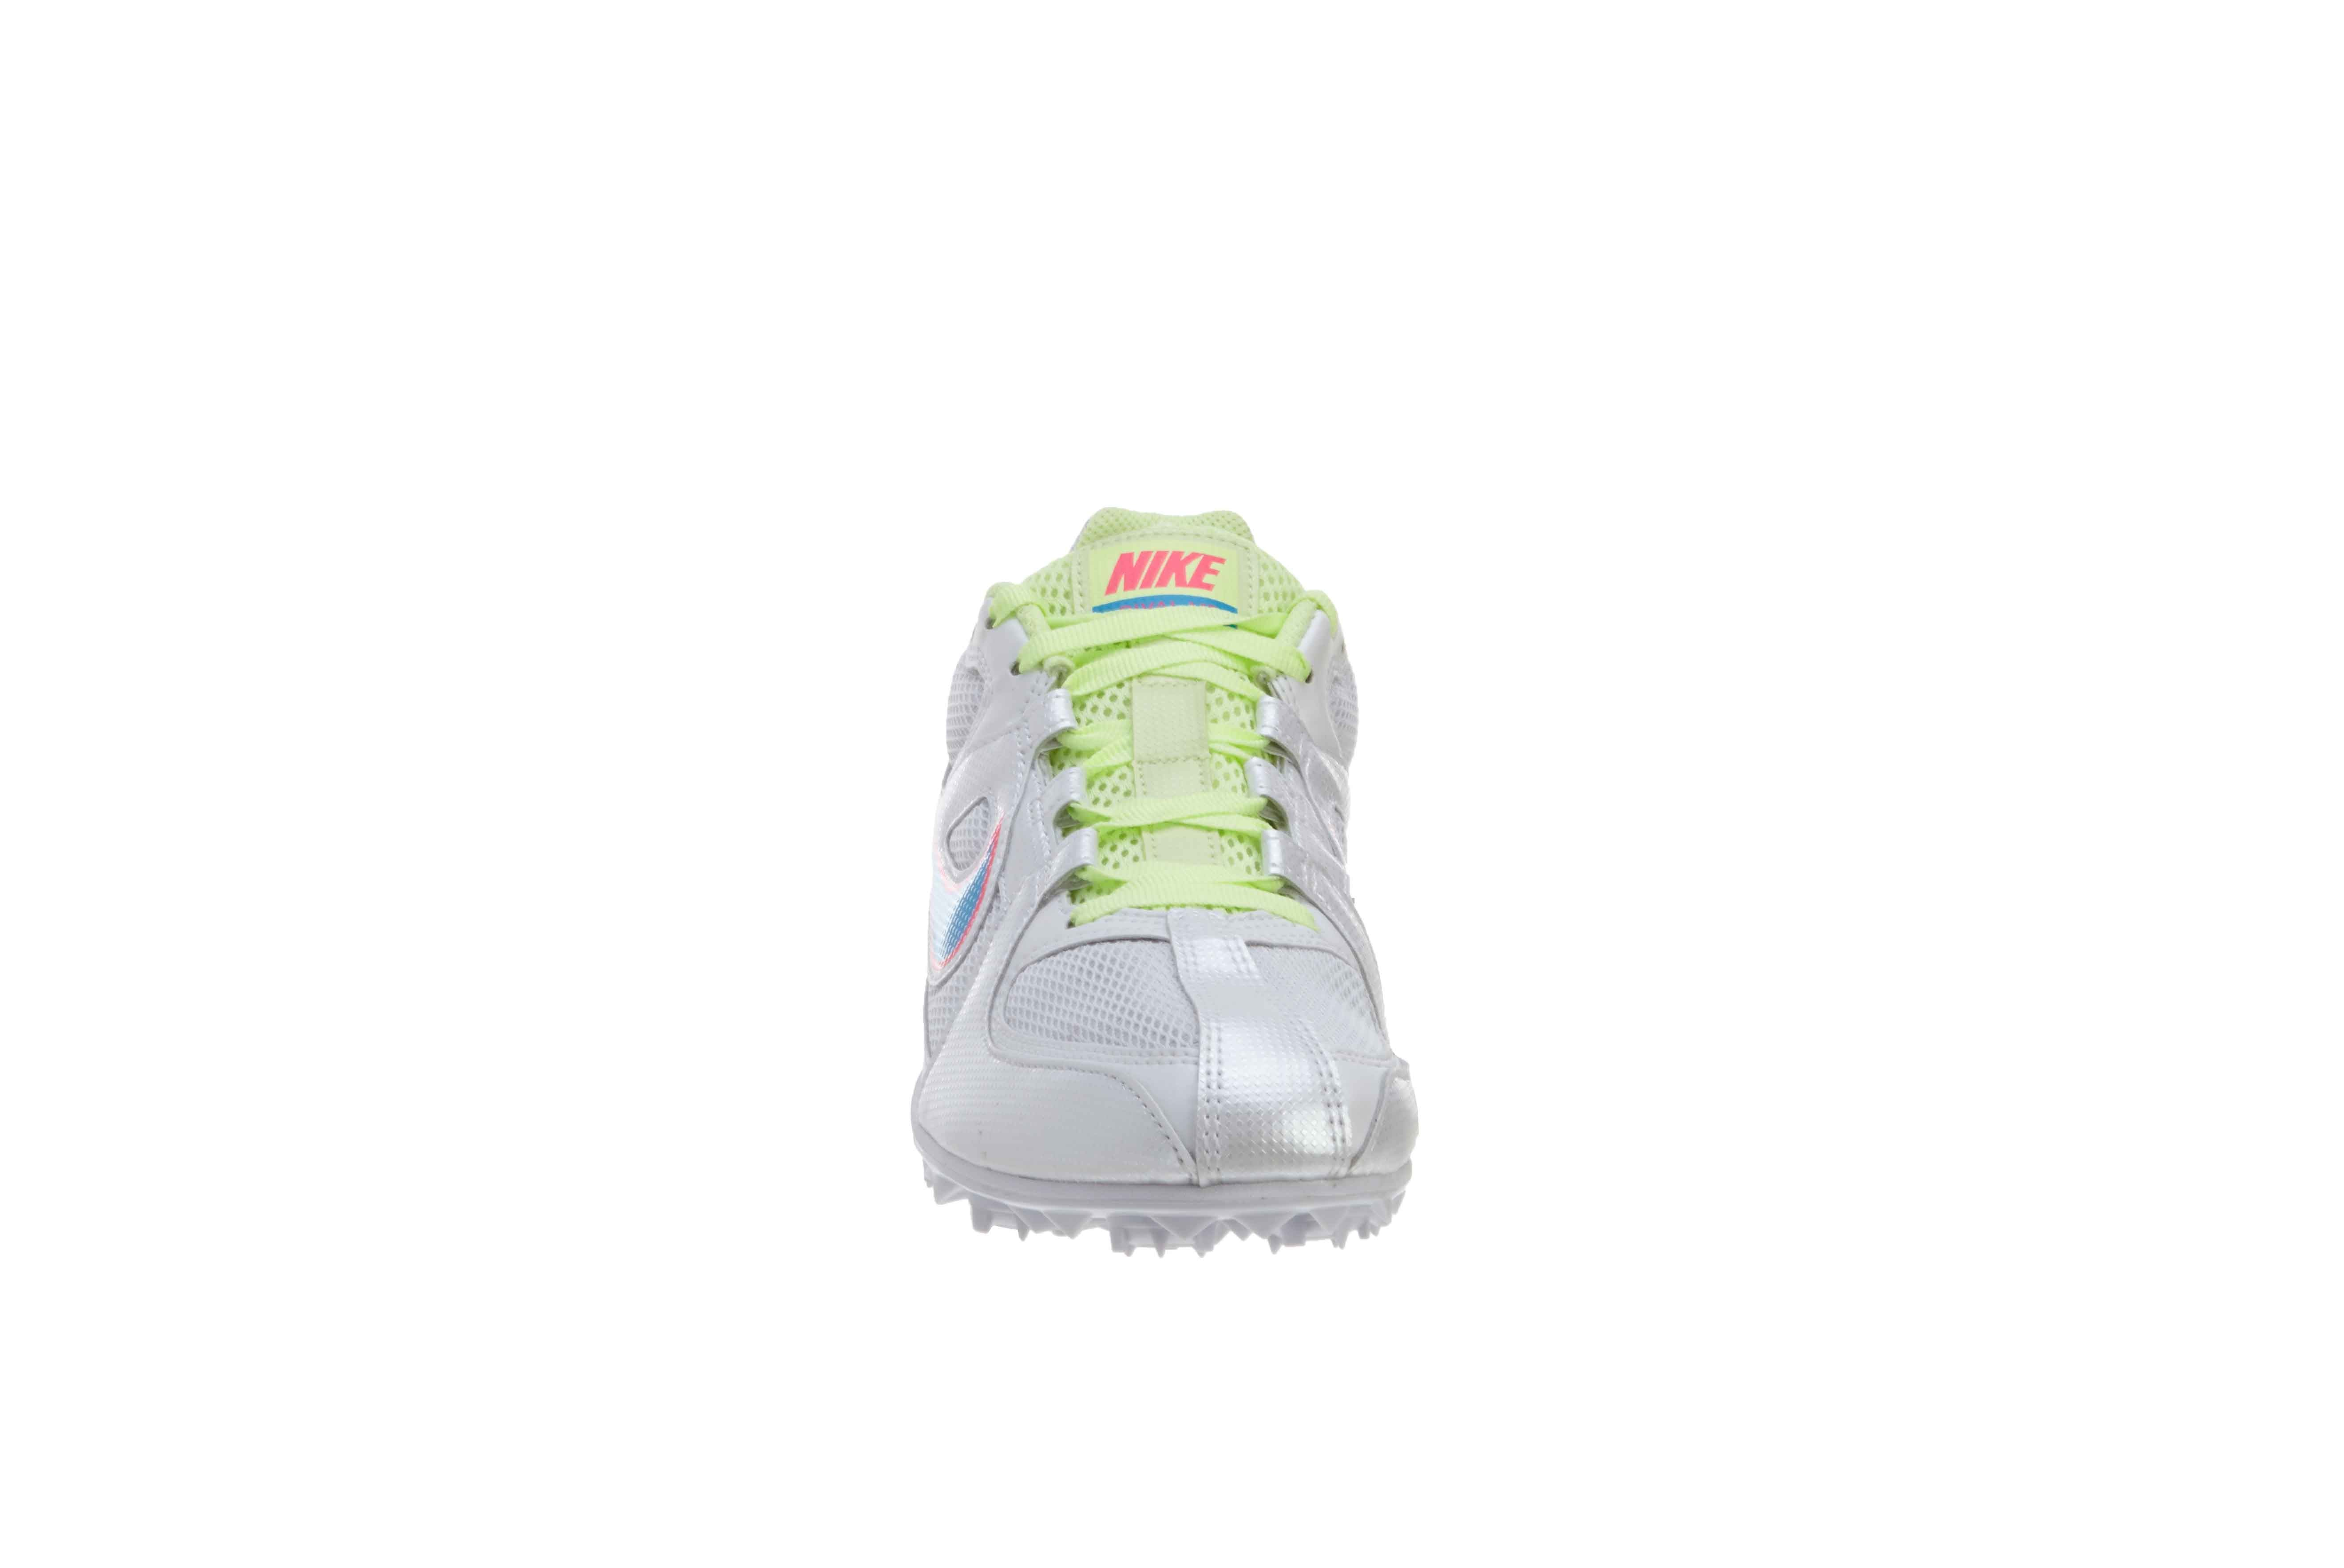 Nike Zoom Rival Md 6 Womens Style # 468650